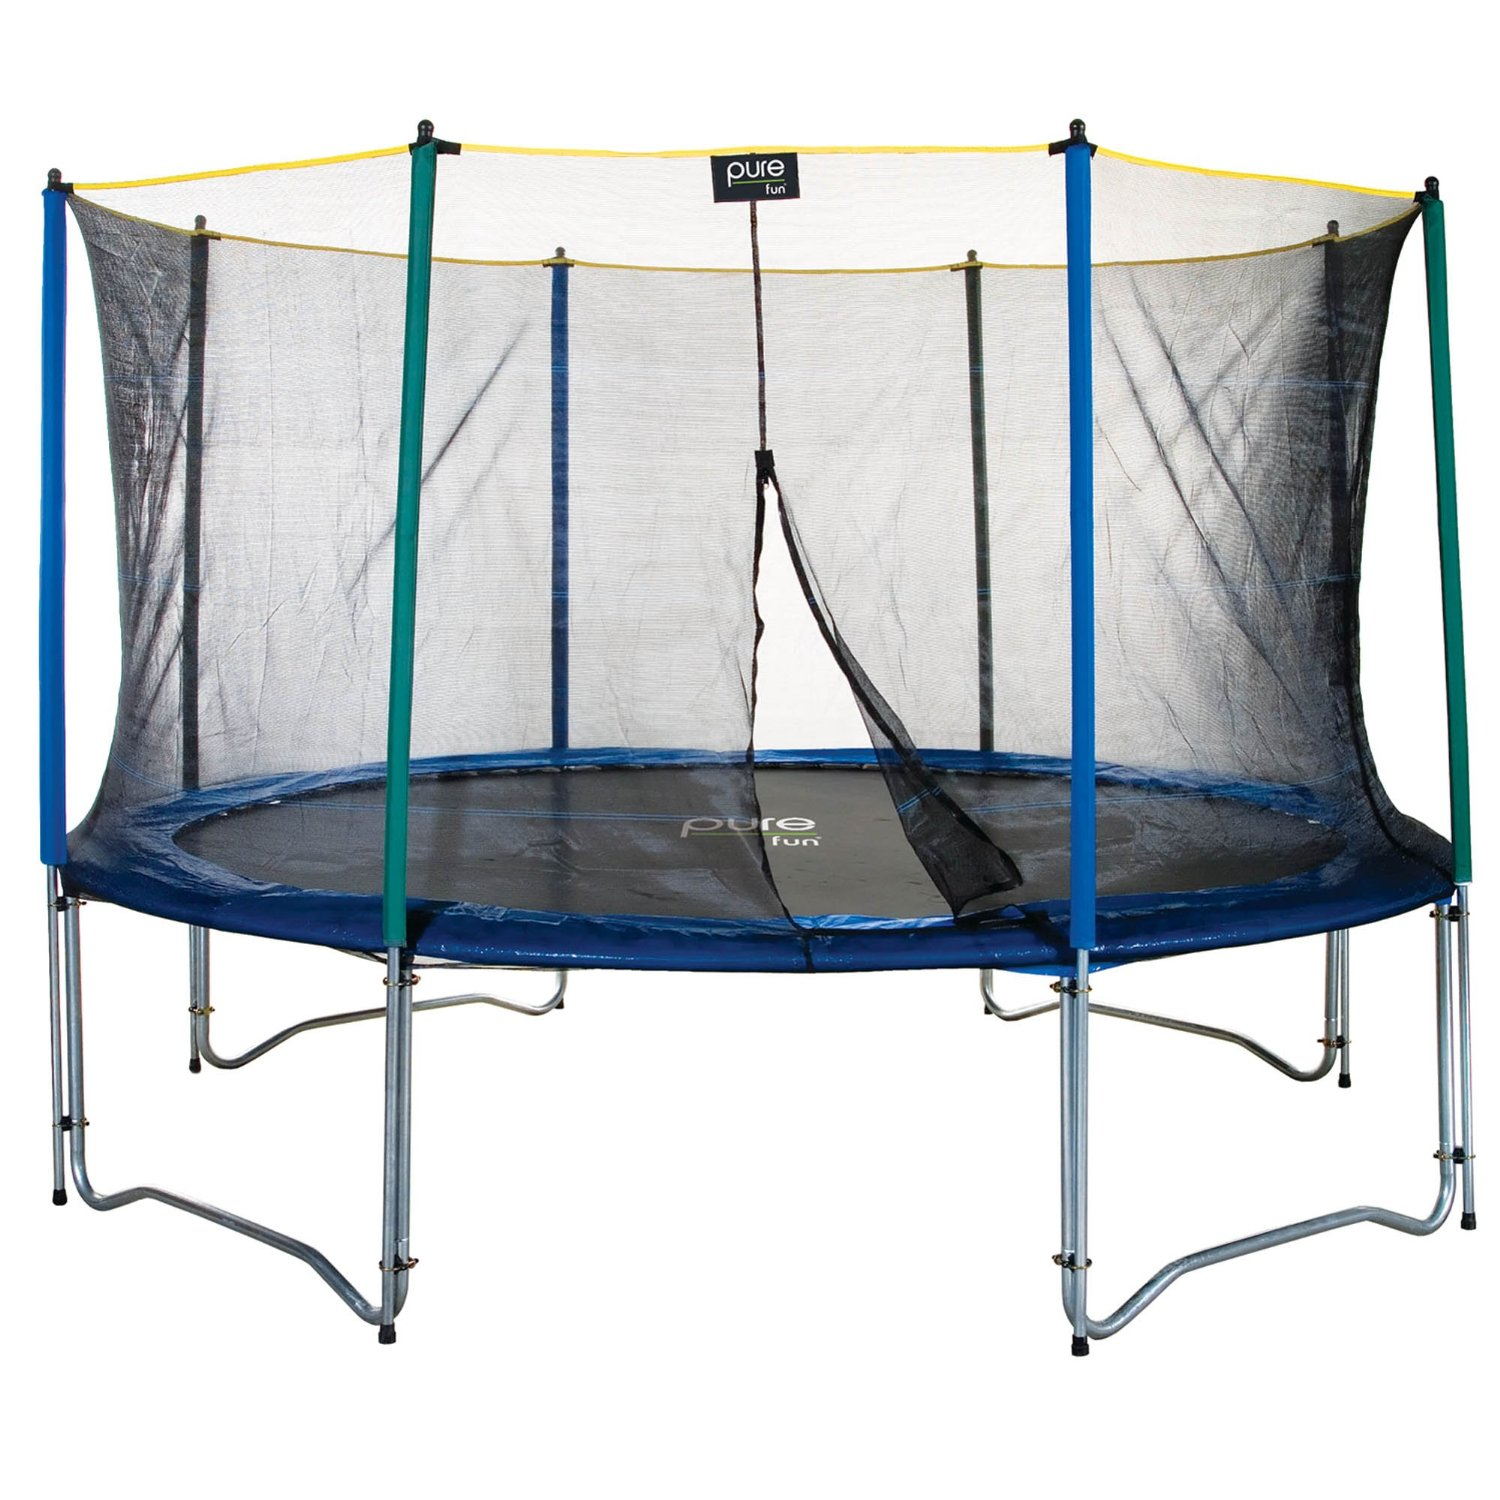 The Best Trampoline Reviews Of 2015 Trampoline101 Com